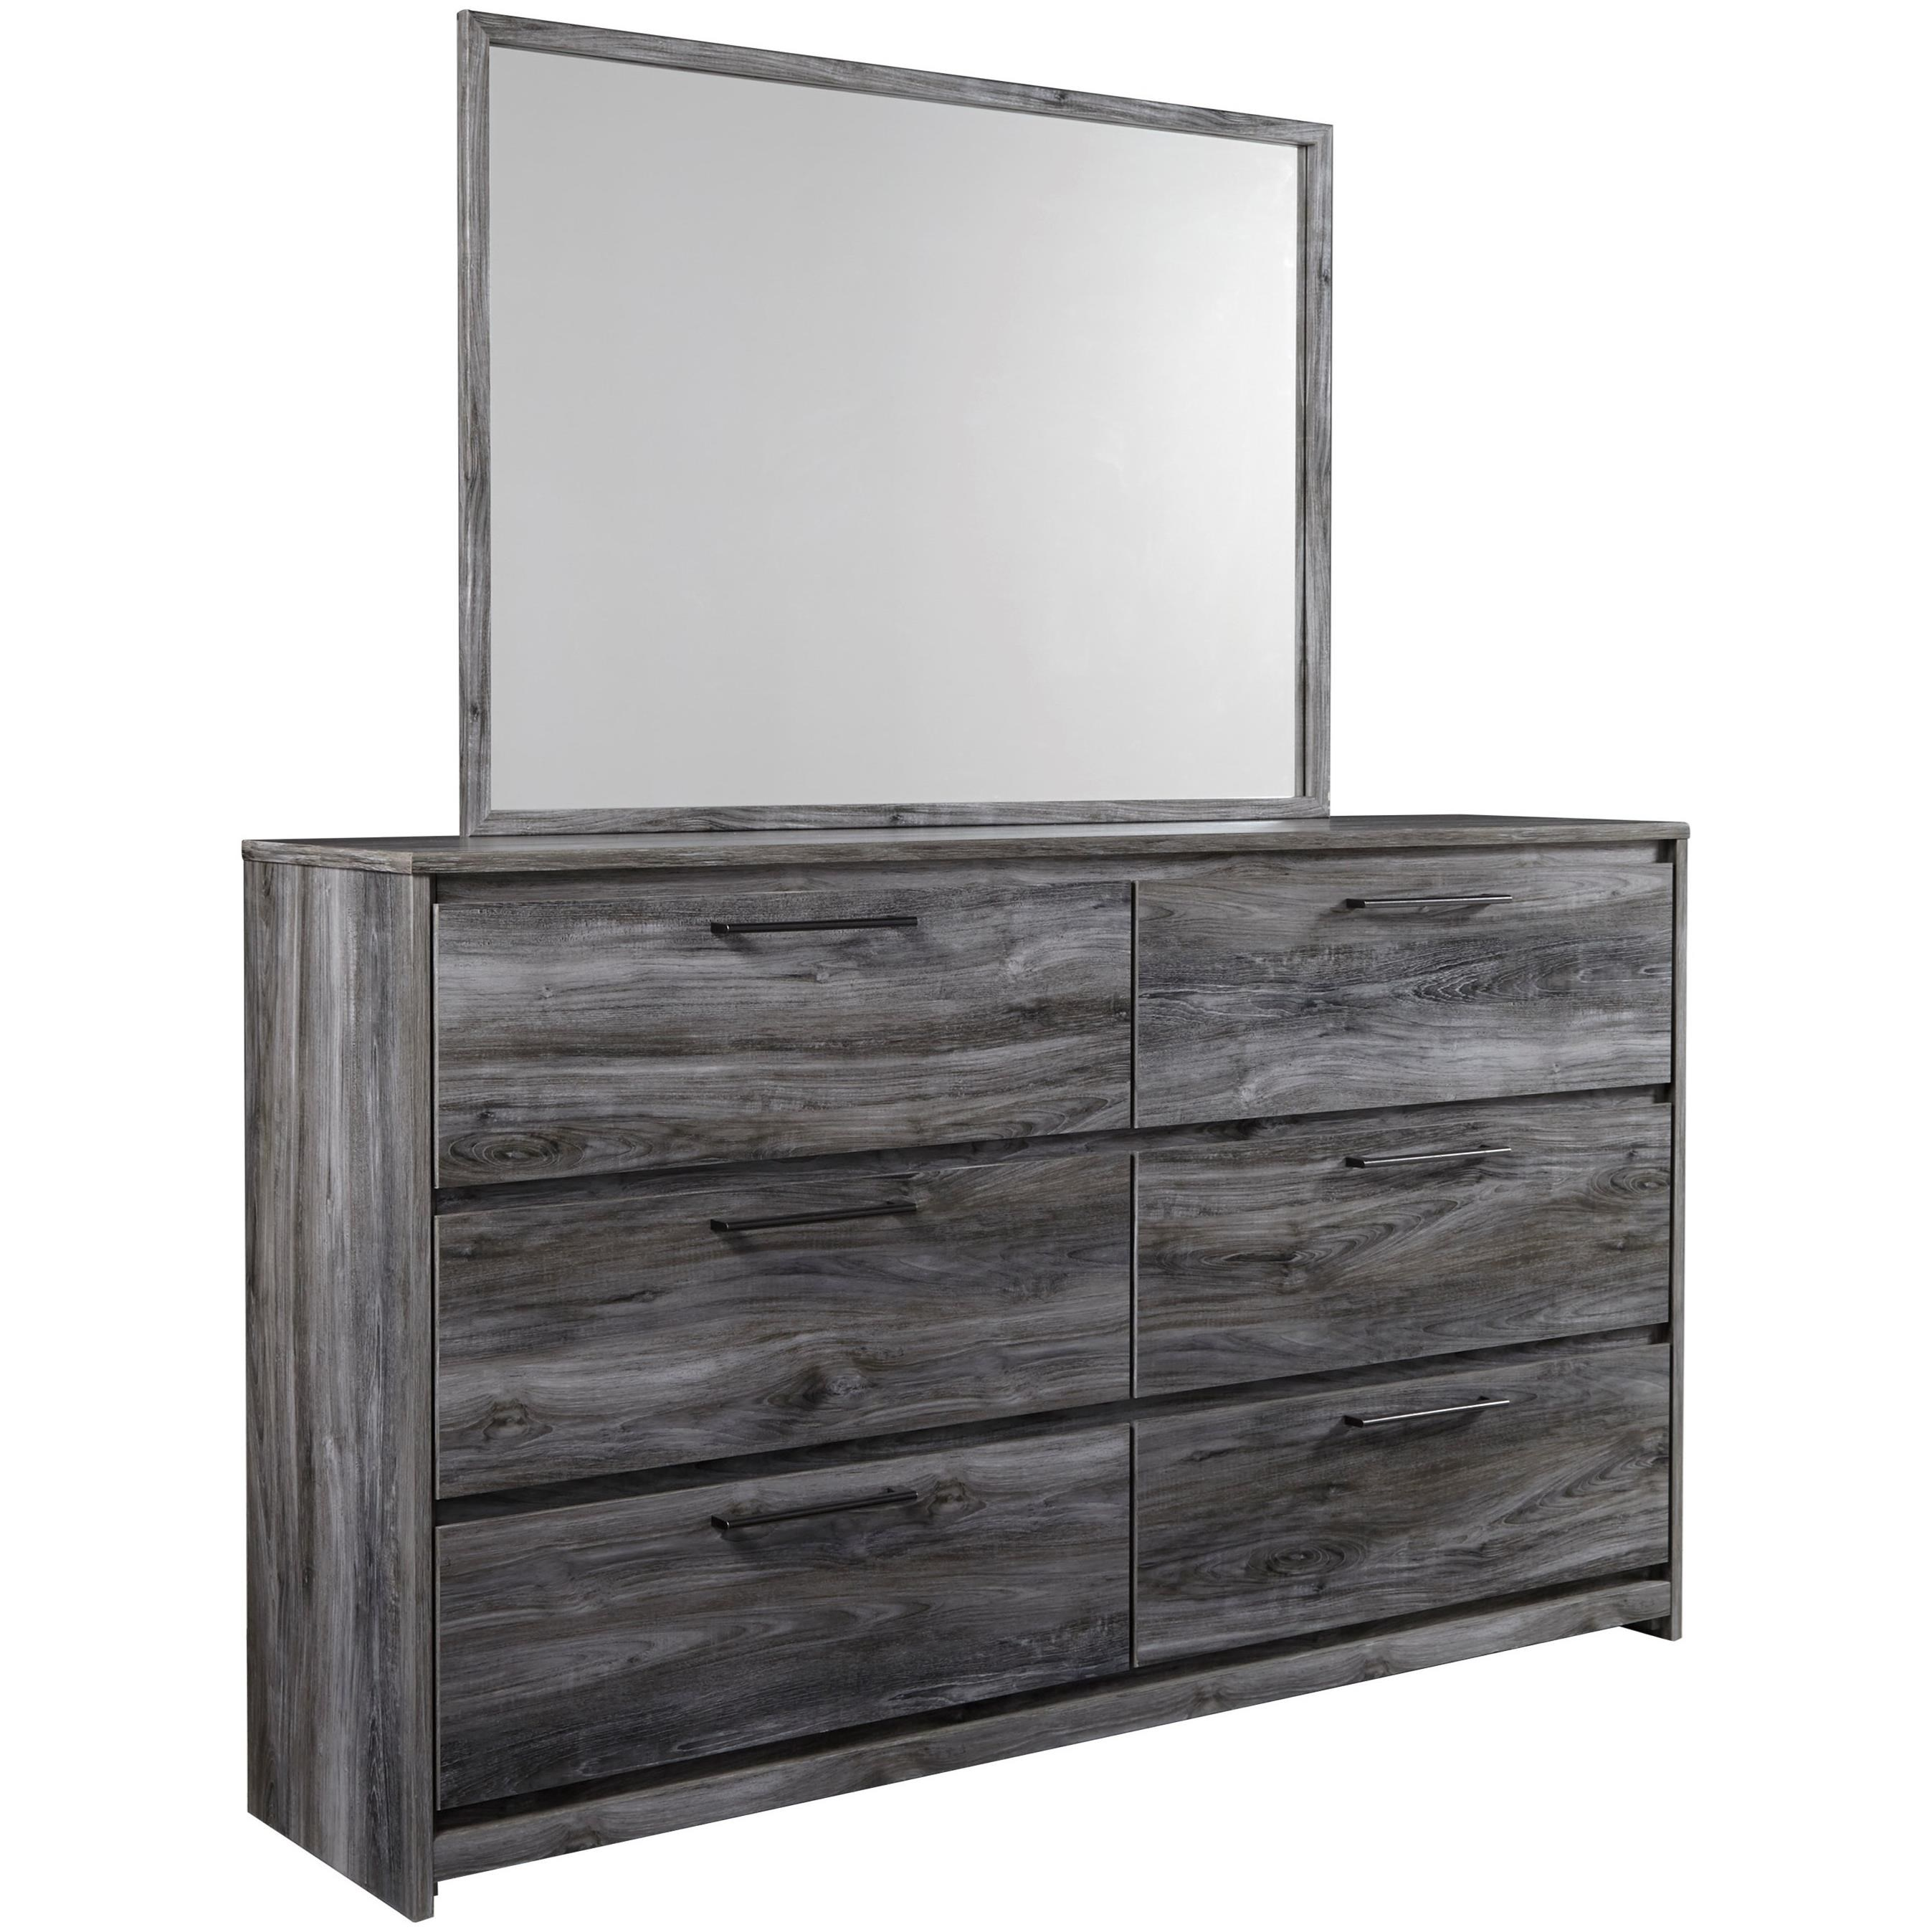 Baystorm Dresser & Mirror by Signature Design by Ashley at HomeWorld Furniture